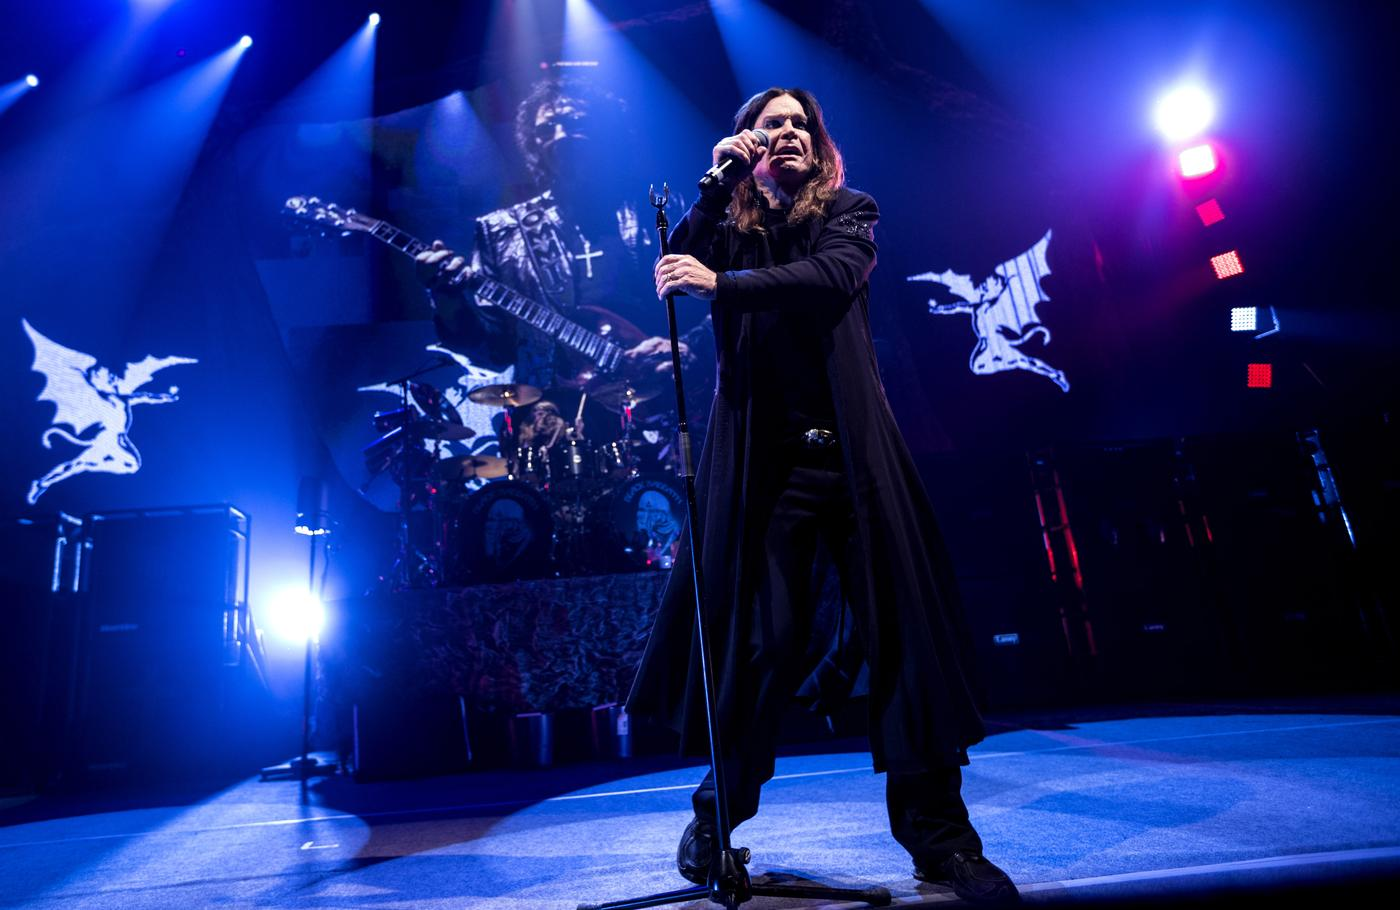 Singer Ozzy Osbourne of British rock band Black Sabbath, performs with guitarist Tony Iommi, seen on screen behind, during a concert Tuesday Nov. 26, 2013, at Forum Arena in Copenhagen, Denmark. (AP Photo/Mikkel Berg Pedersen, Polfoto ) DENMARK OUT